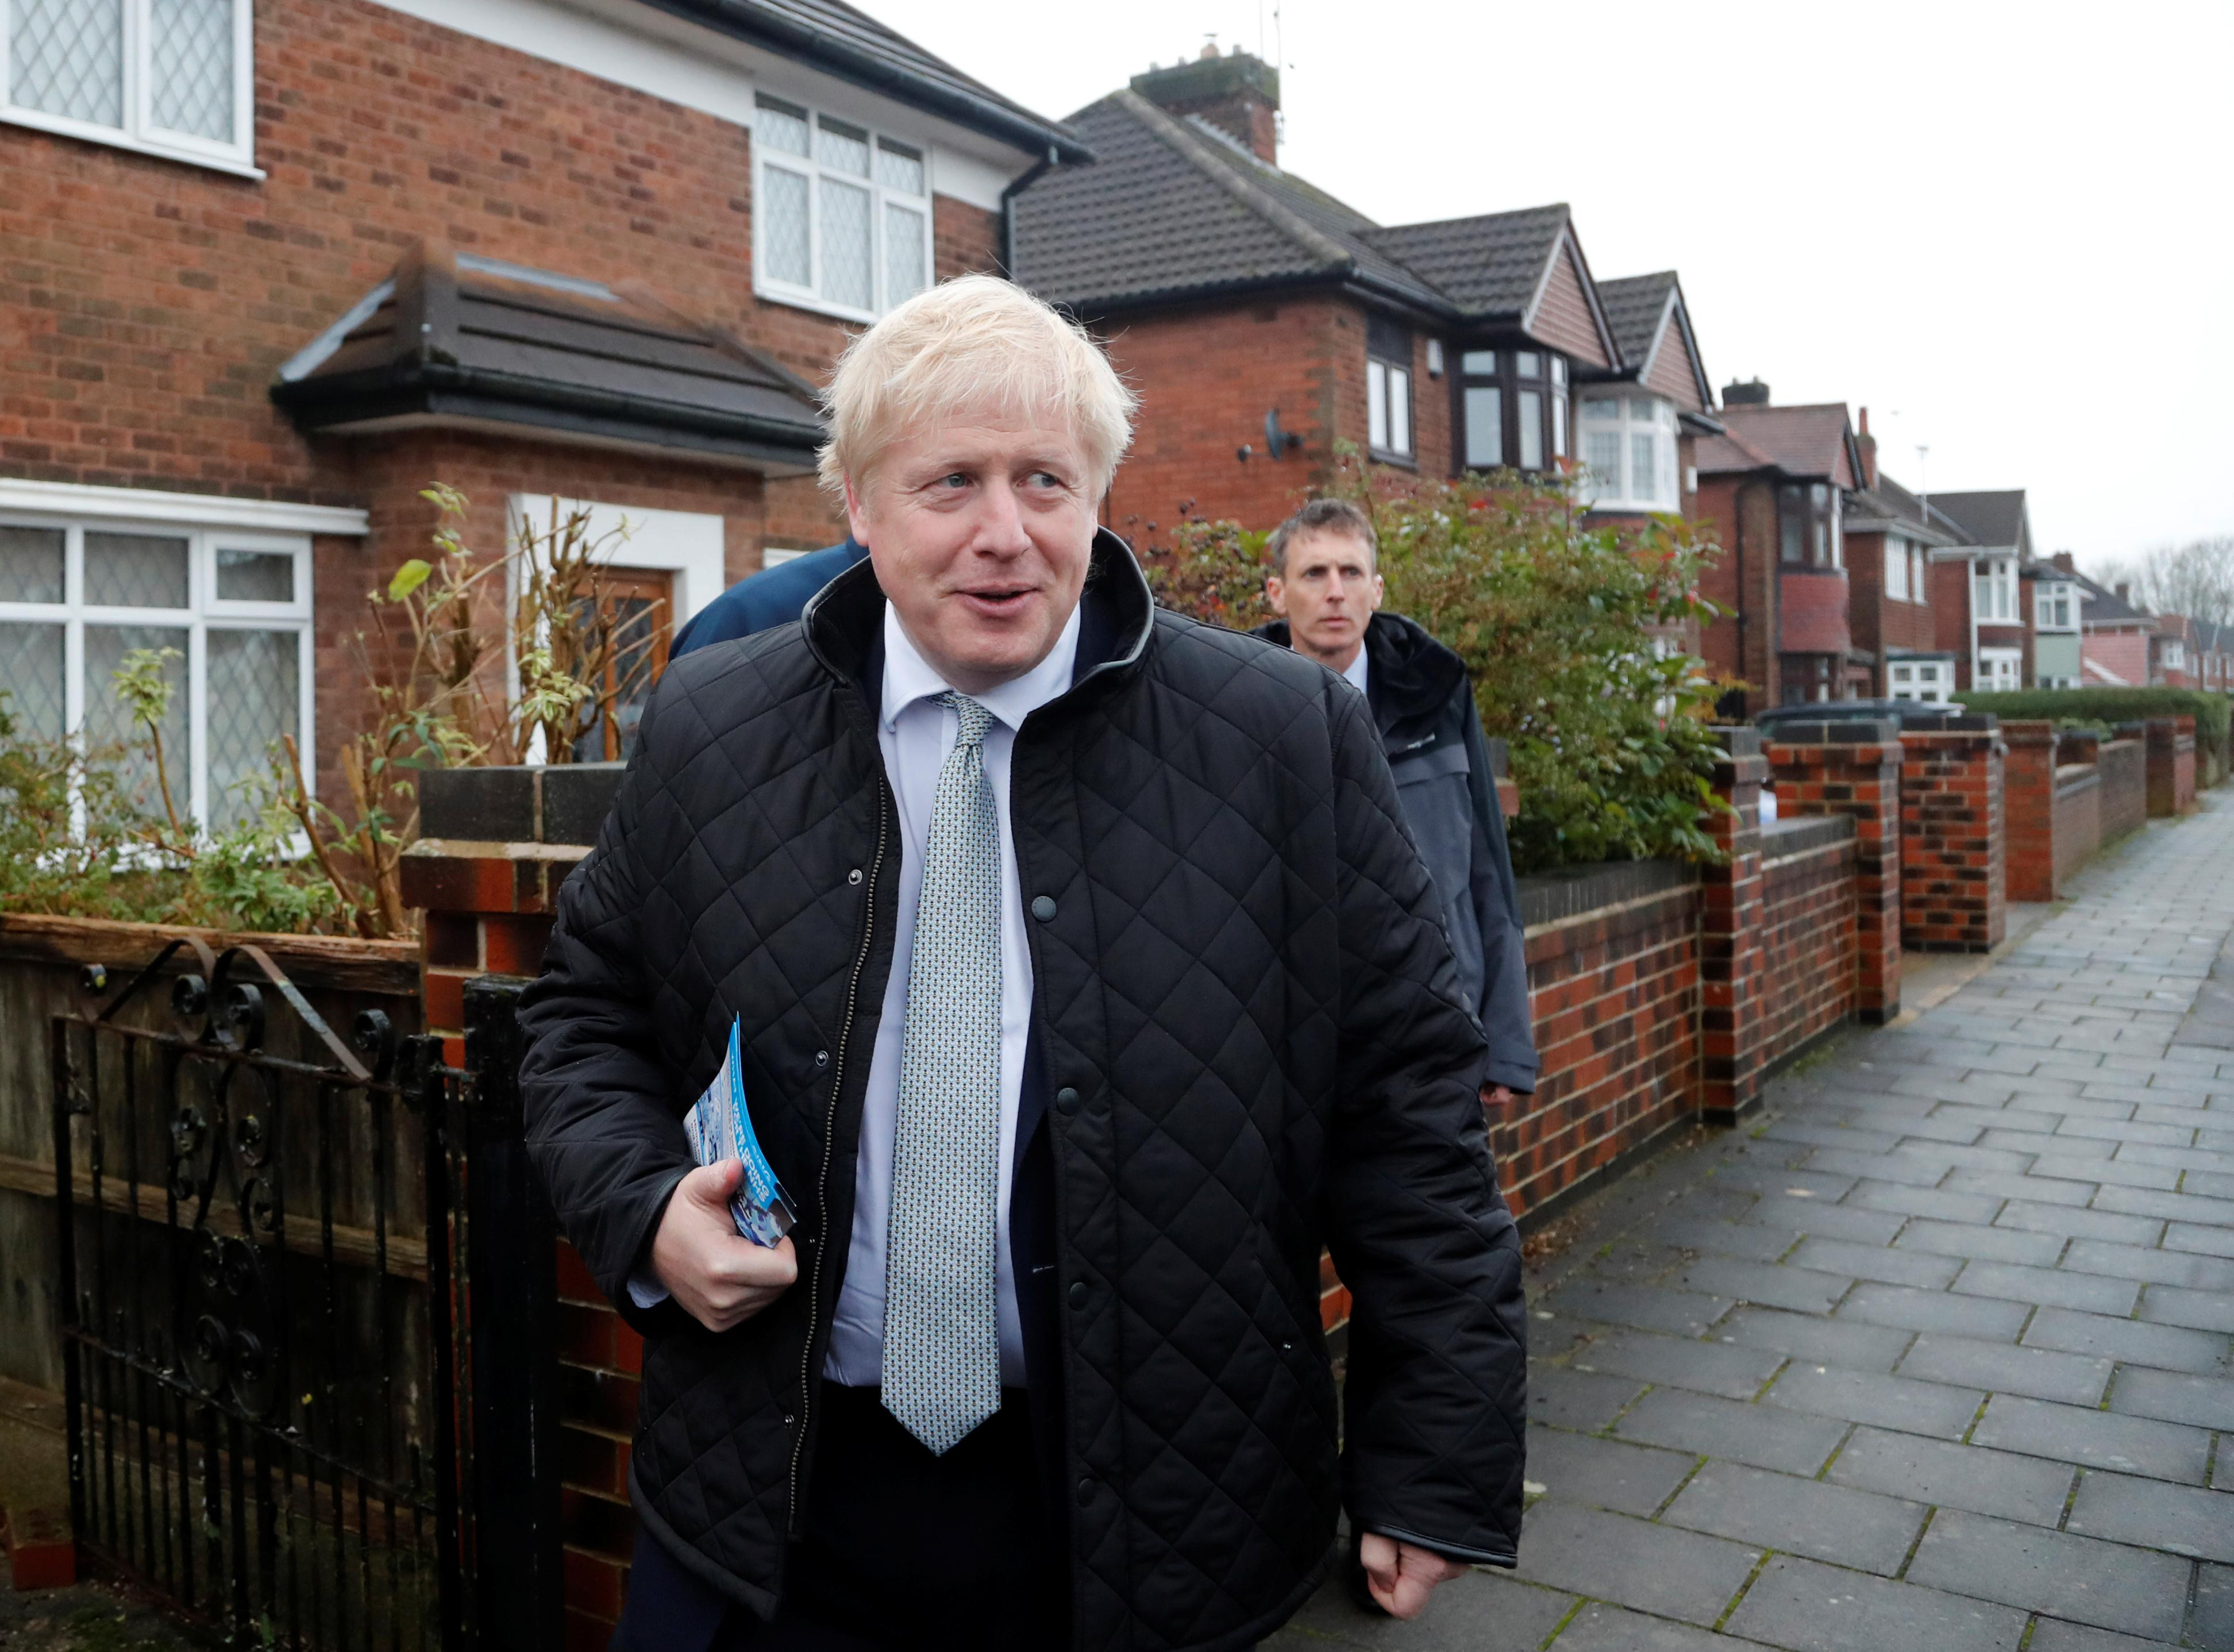 PM Johnson's Conservatives have highest support since 2017 - polls